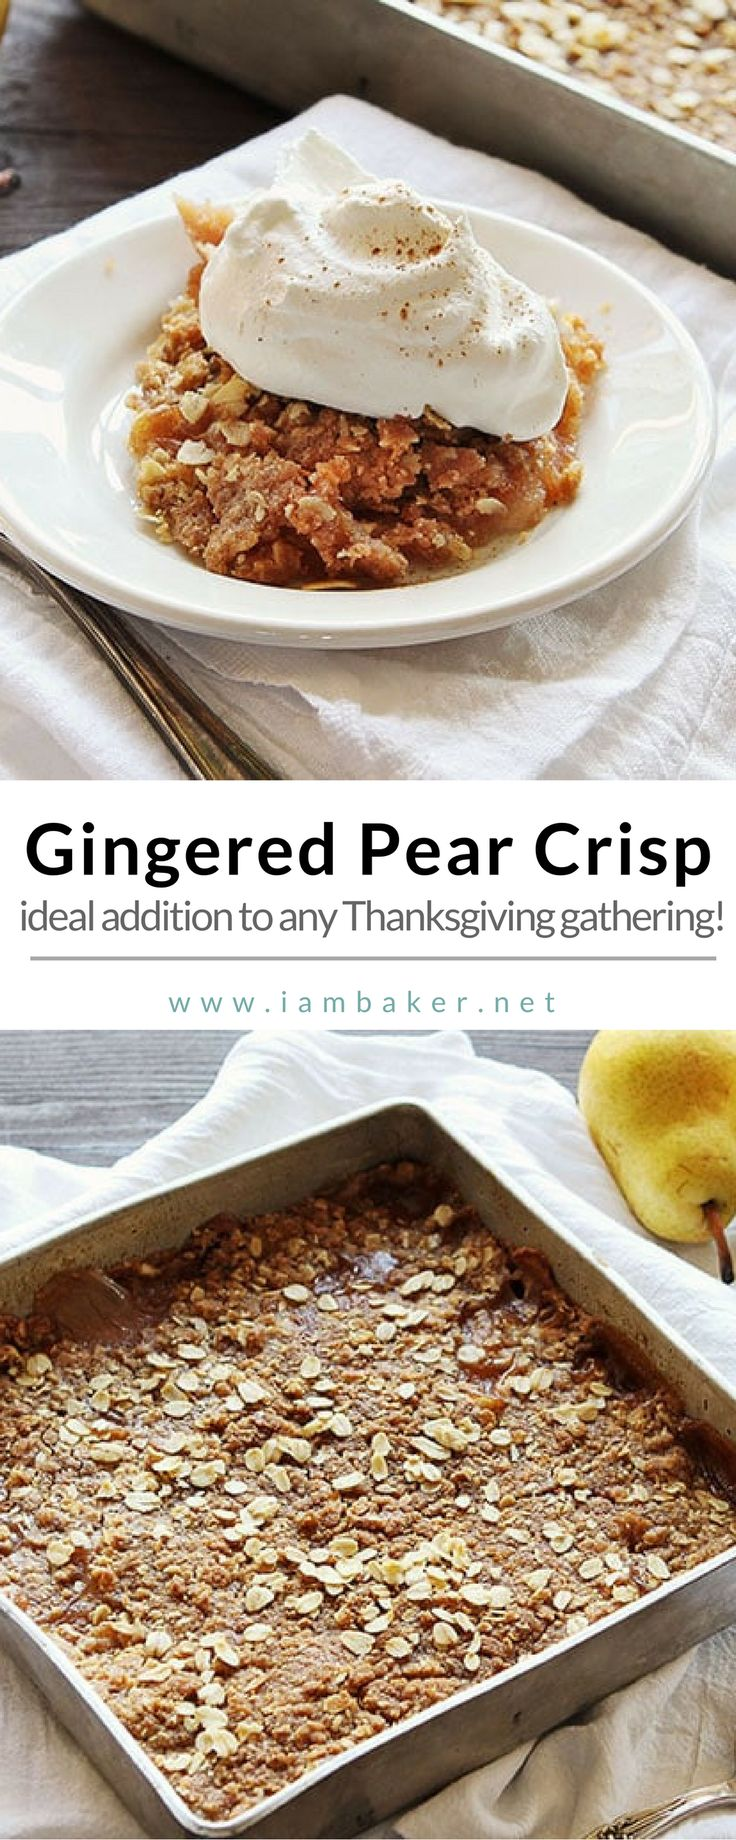 If you are looking for easy dessert recipes this Thanksgiving, you should try one of these easy pear recipes as dessert - gingered pear crisp! Fresh and healthy recipe for the whole family! For more delicious dessert recipes to make, check us out at #iambaker. #desserts #sweettooth